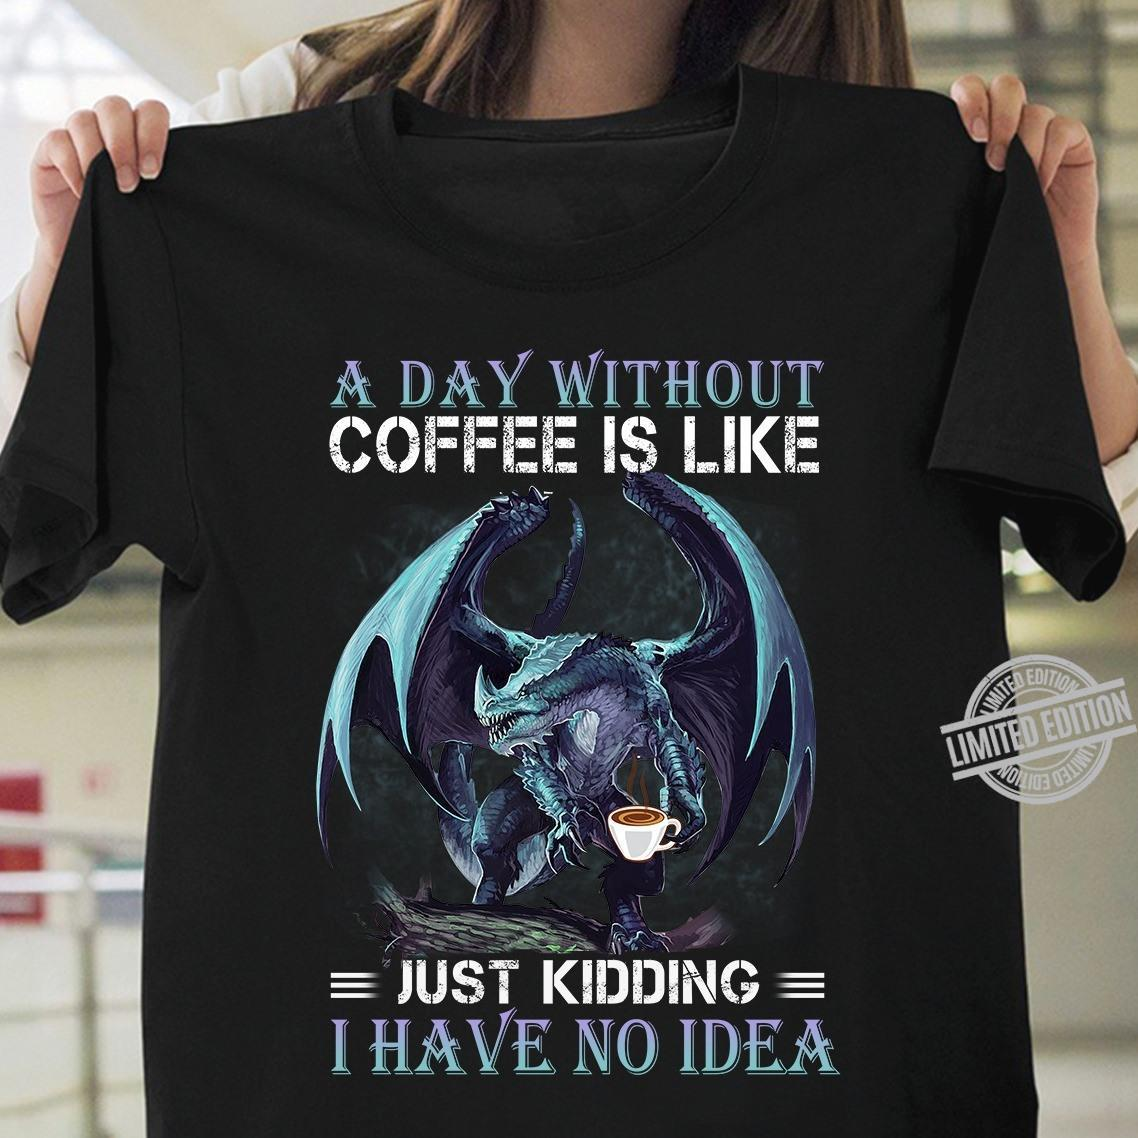 A Day Without Coffee Is Like Just Kidding I Have No Idea Shirt